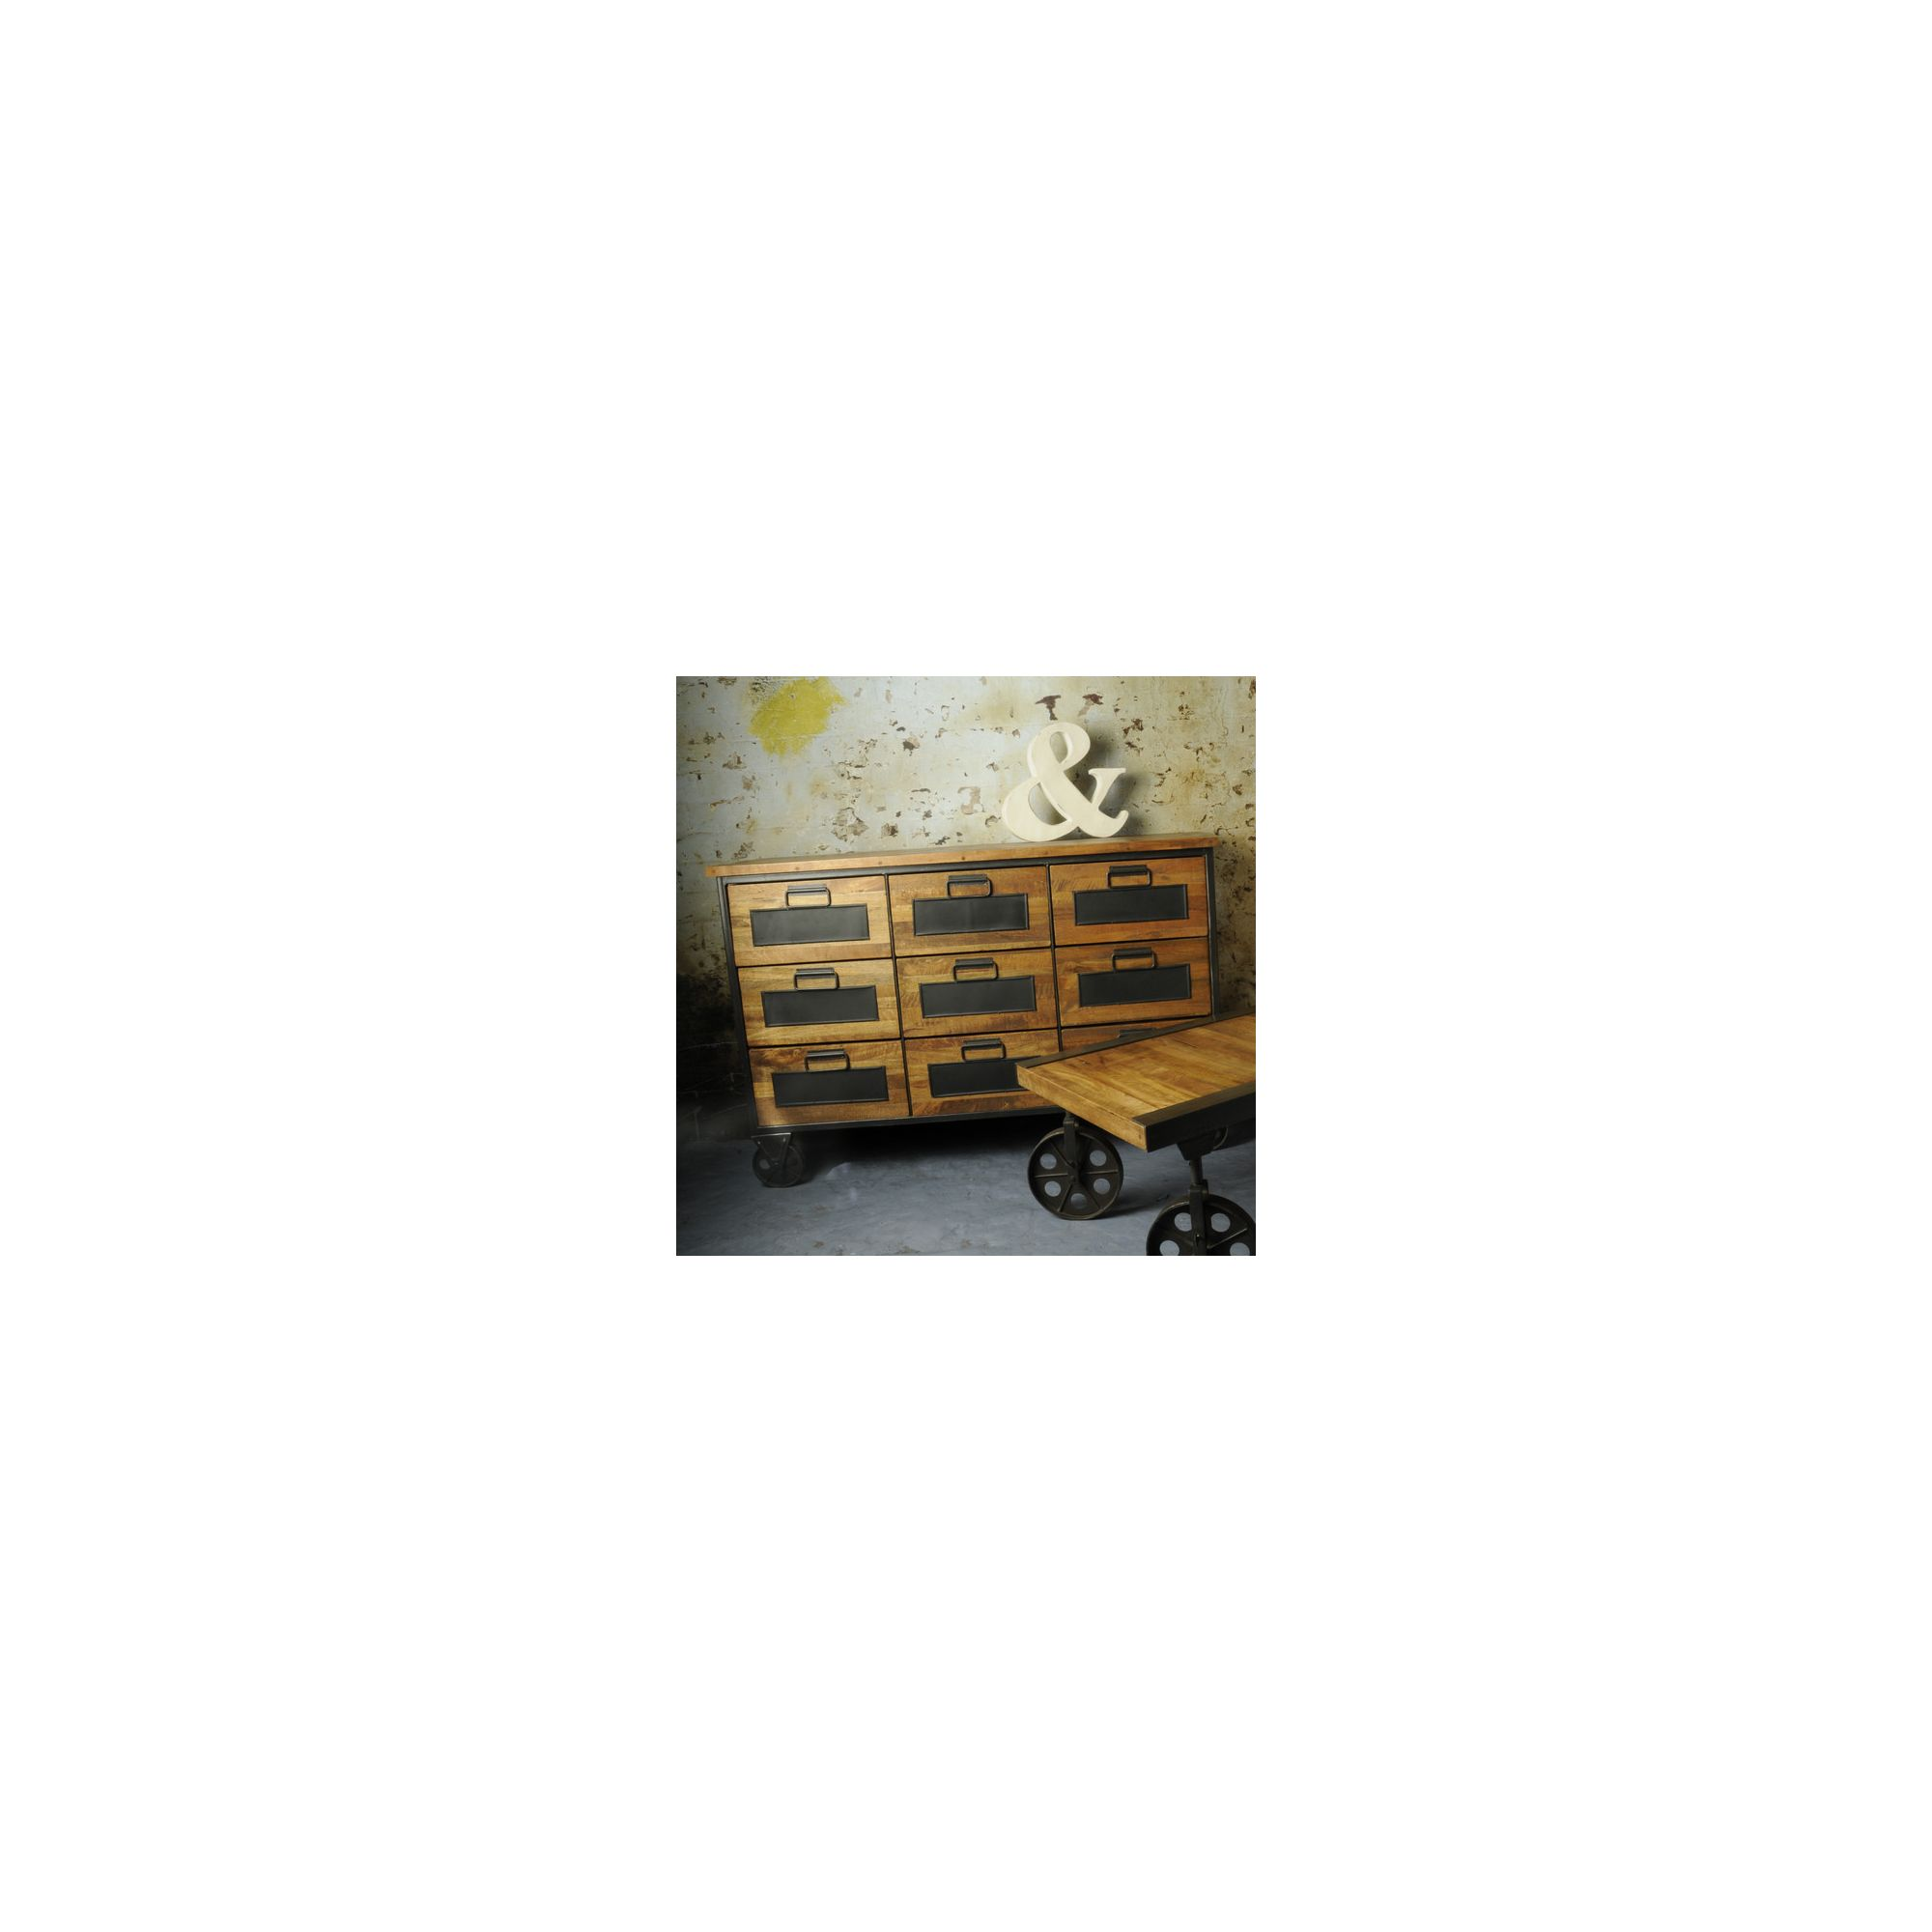 Oceans Apart Industrial Living Nine Drawers Apothecary Chest at Tesco Direct